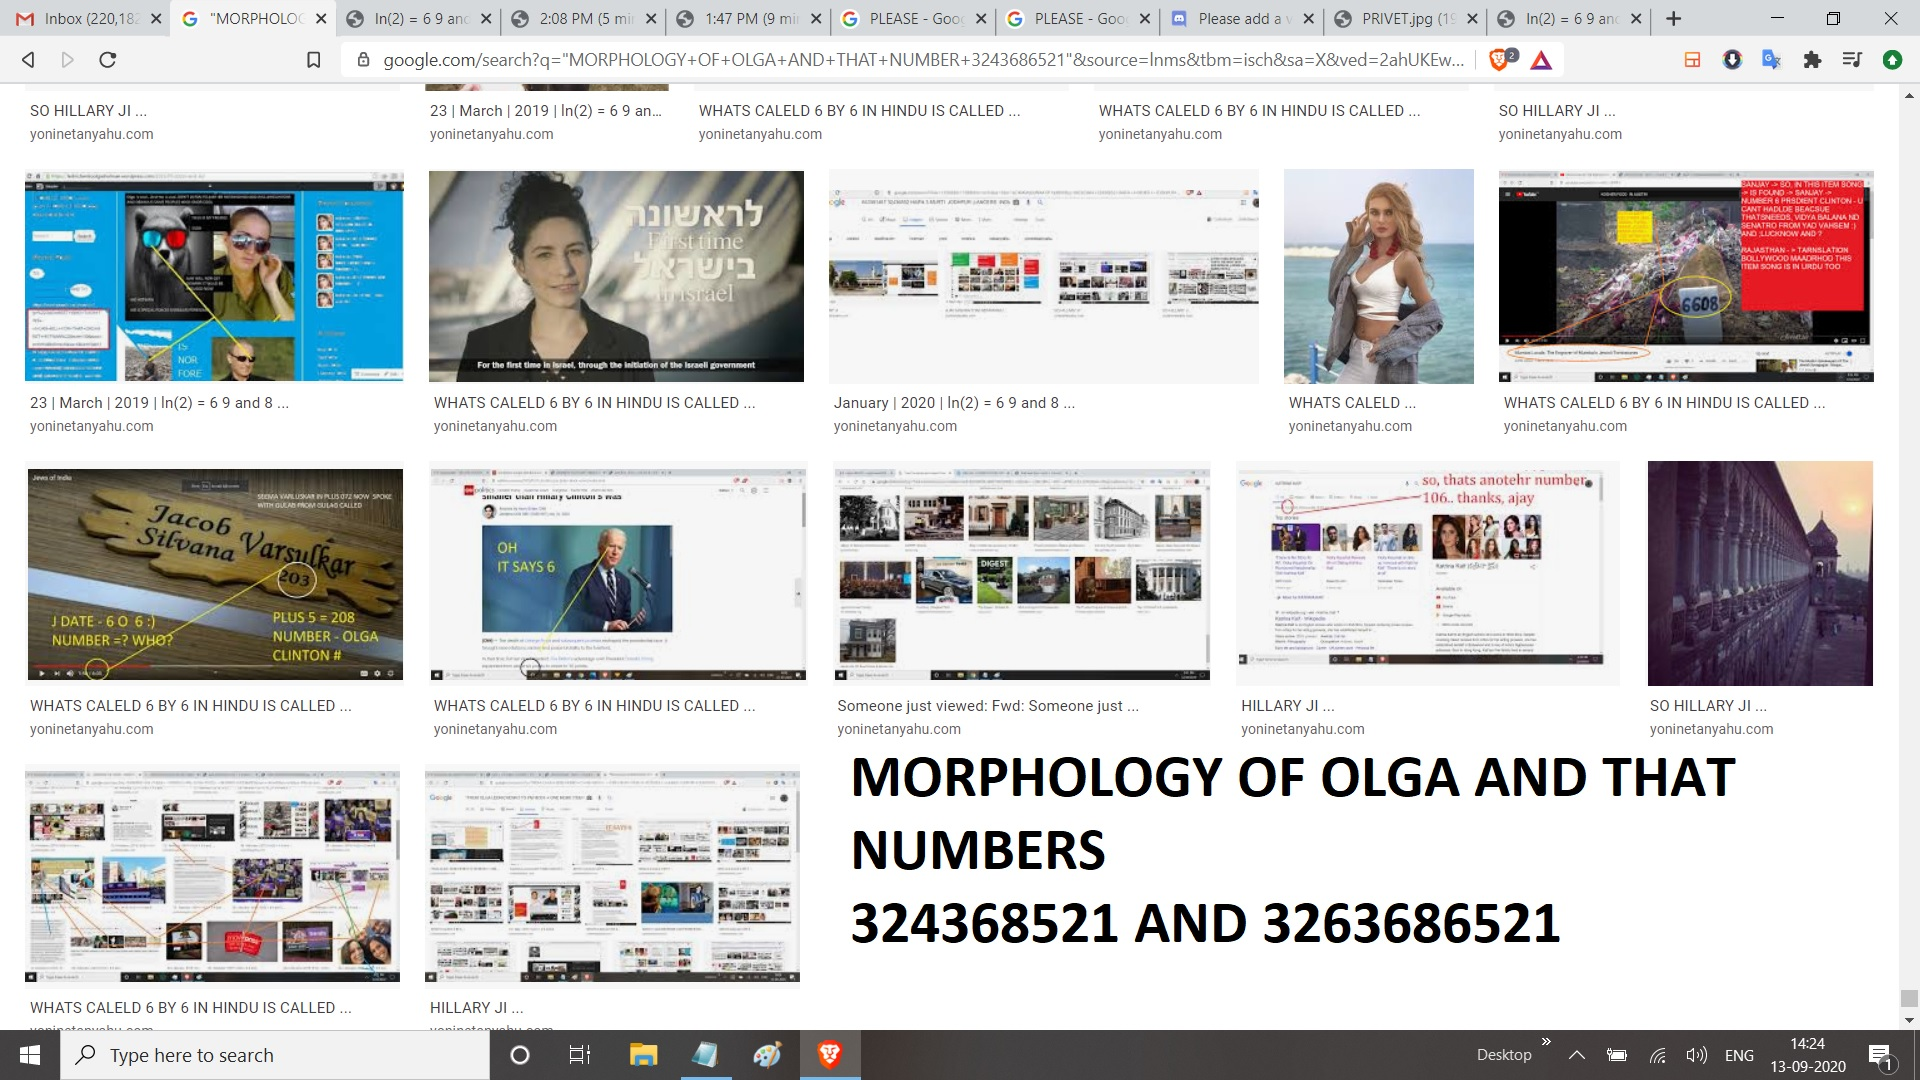 MORPPHOLOOGY OF OLGA AND THAT NUMBER 324368521 AND 3243686521